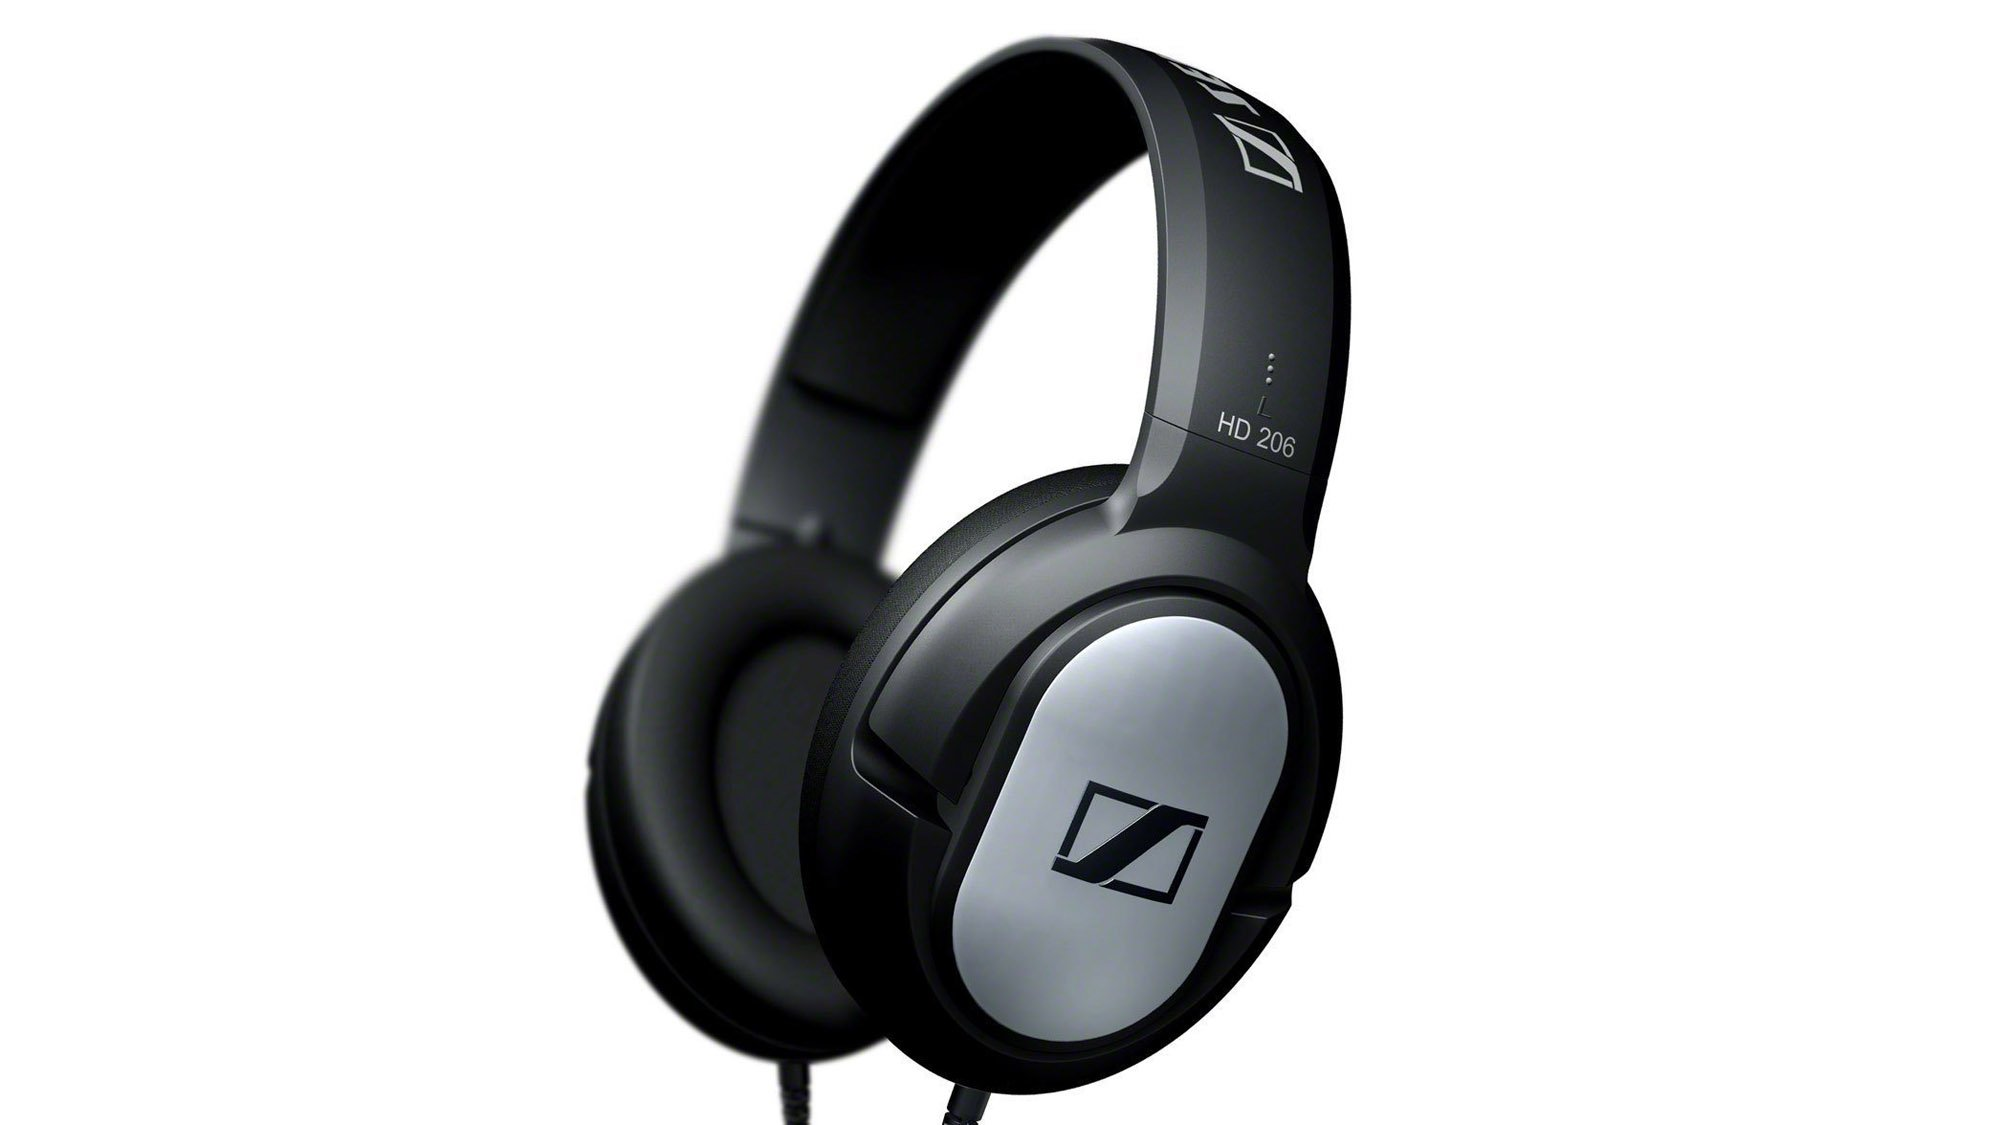 cc7978fc0af042 The Sennheiser HD201 was regarded as one of the best budget reference  headphones money can buy, and the HD206 follow in their footsteps.